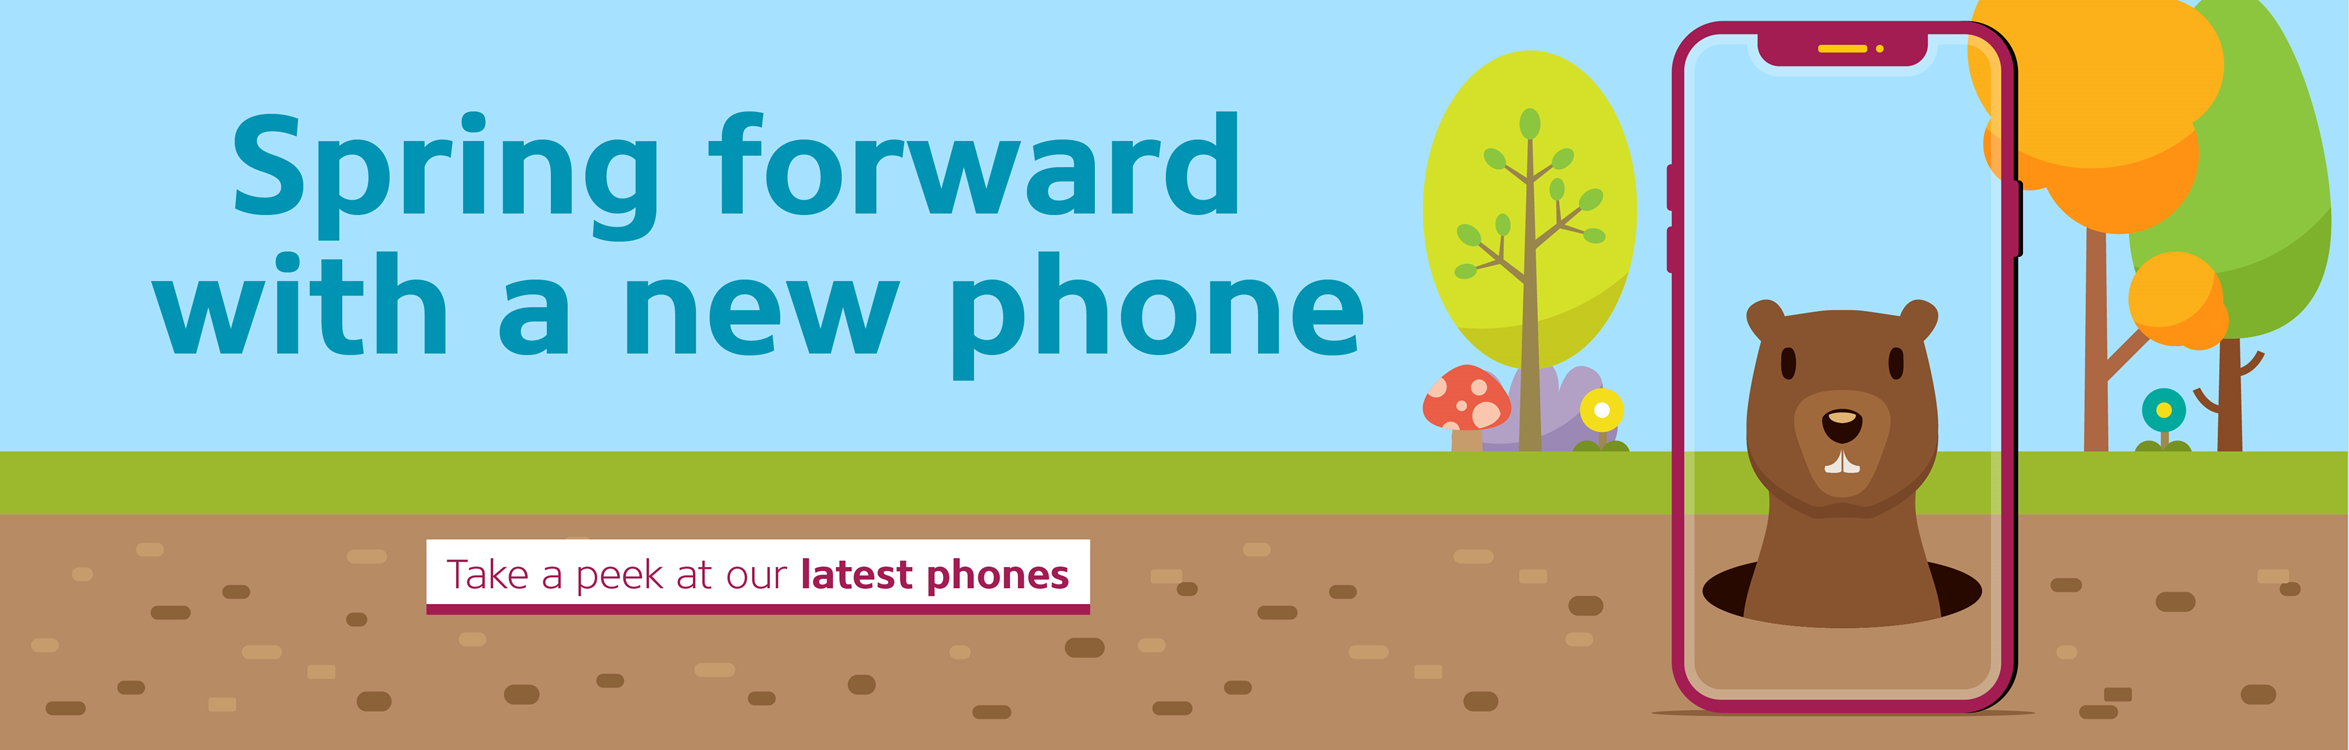 Spring forward with a new phone